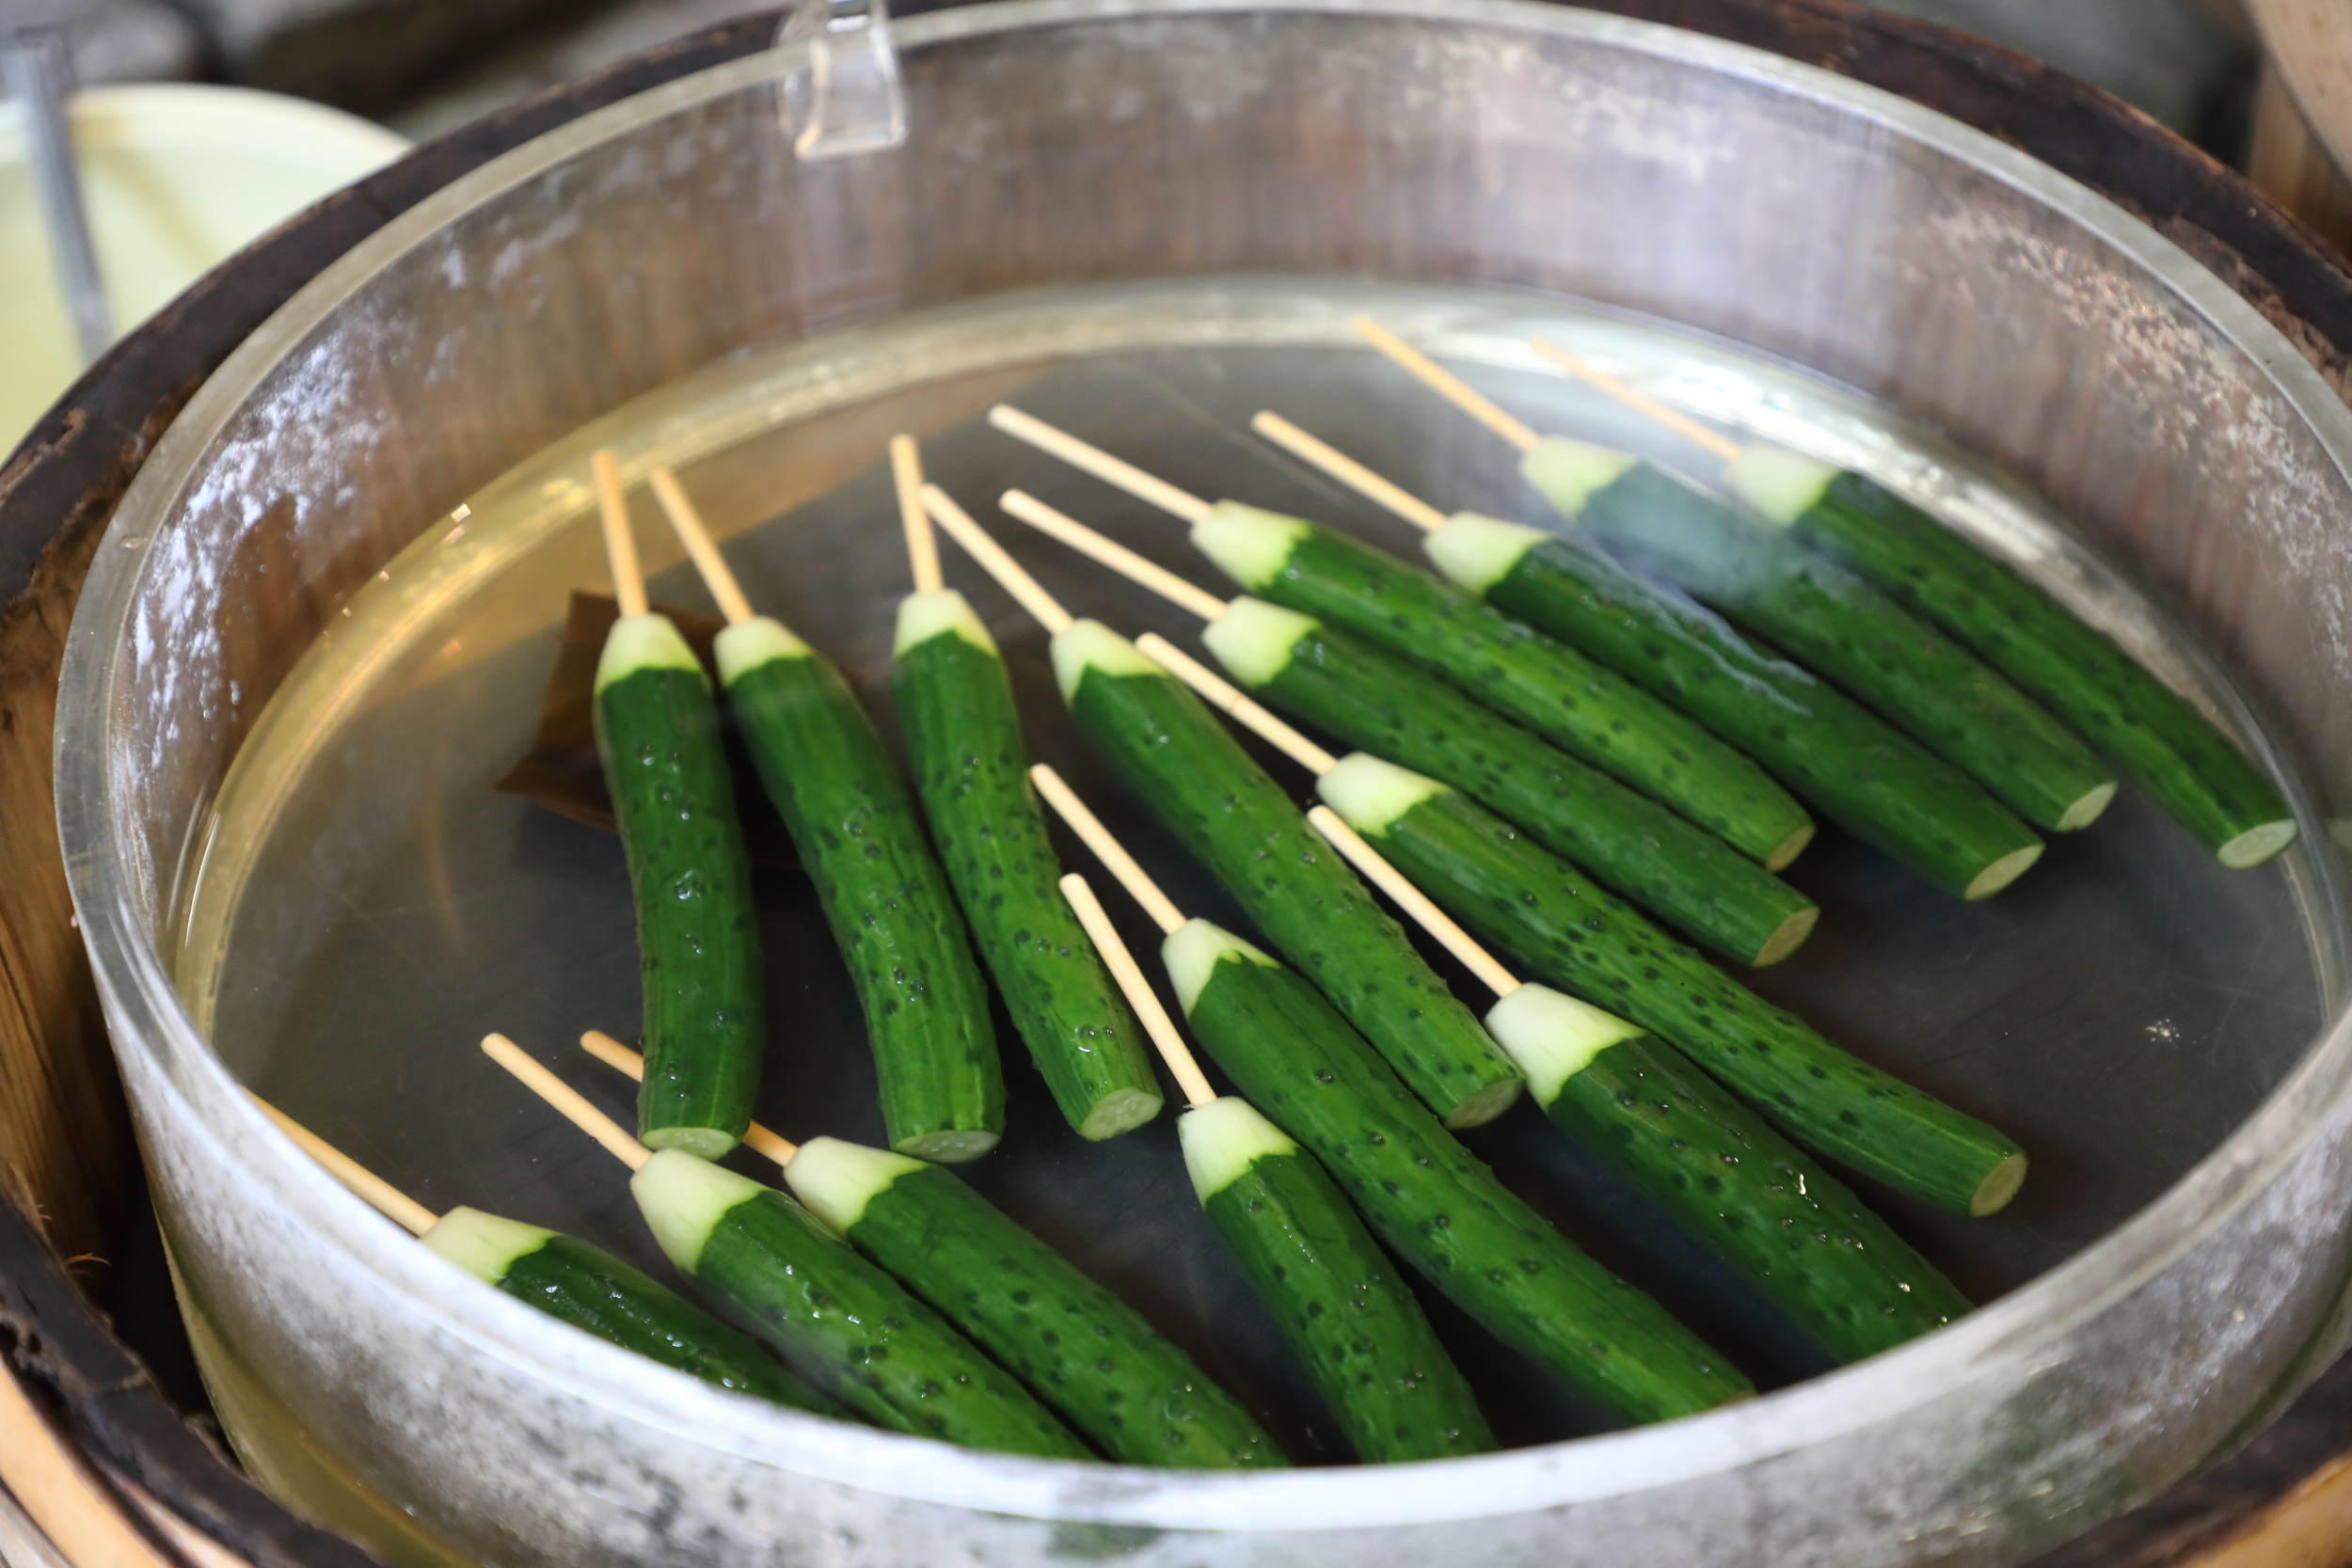 Lightly pickled in salt and iced konbu stock, Shibakyu's slender, virtually seedless, and crunchy Japanese cucumber pickles-on-a-stick are a healthy and refreshing snack even on a cool spring day.